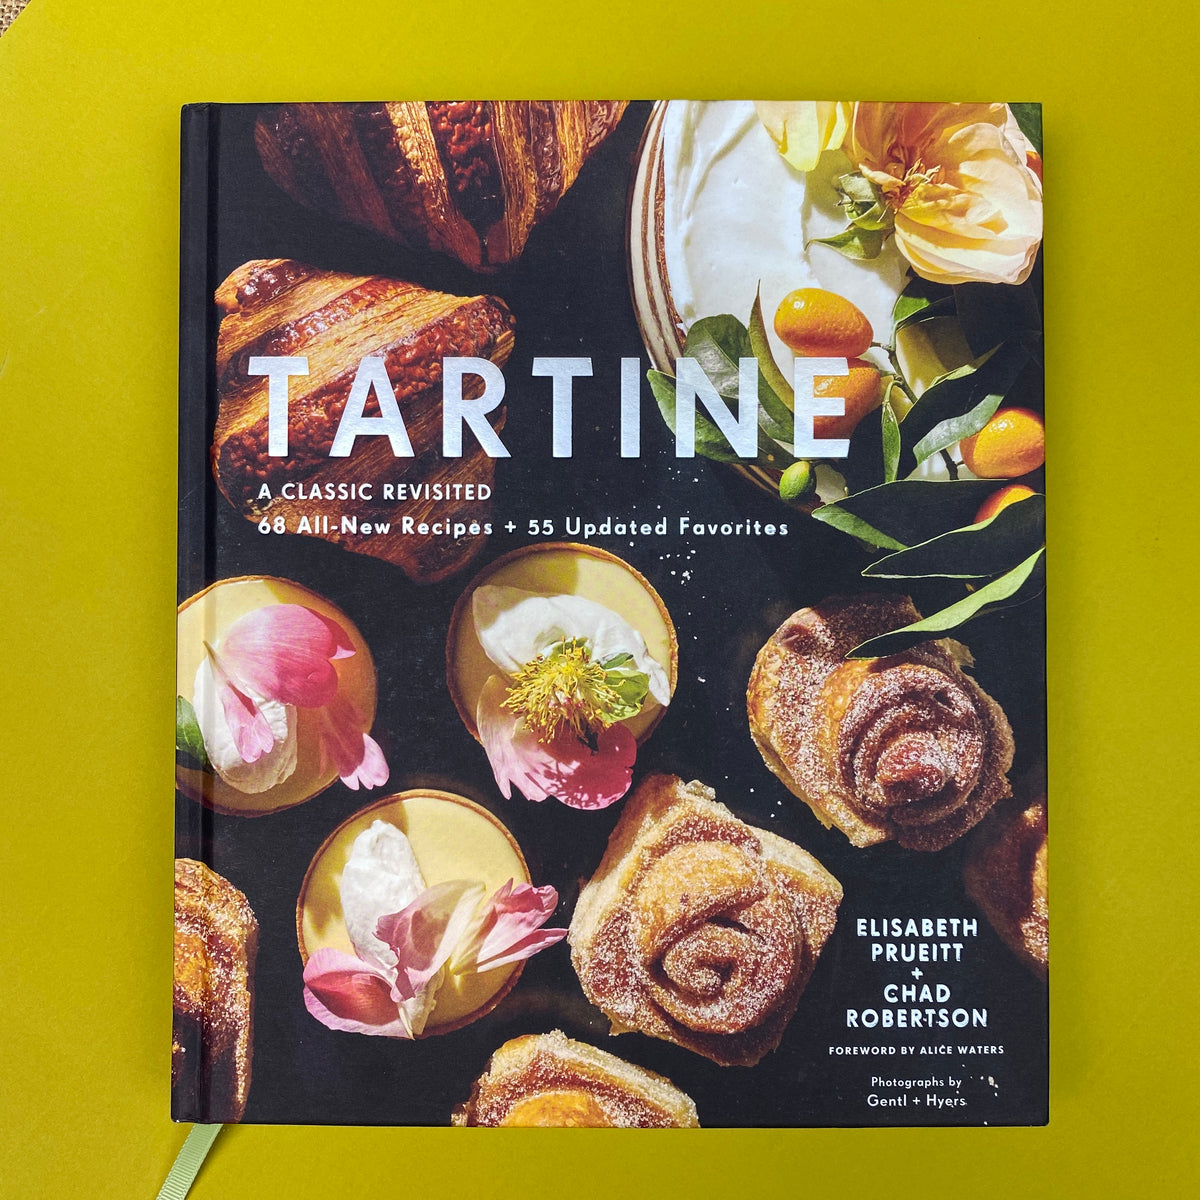 Tartine - A Classic Revisited